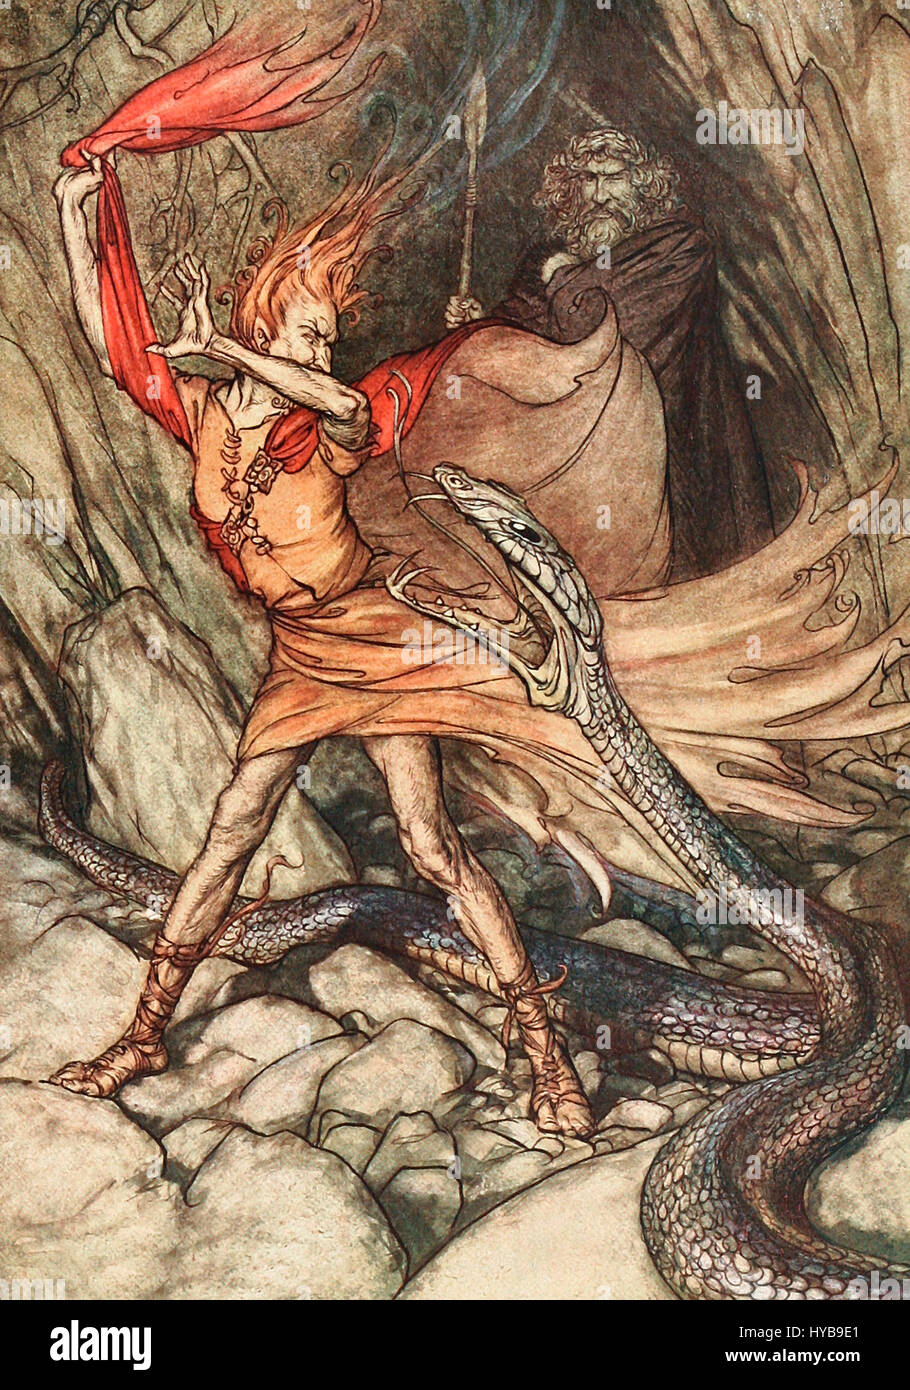 Oh! Oh! Horrible dragon, O swallow me not! Spare the life of poor Loge! - Scene from Das Rheingold of Der Ring des Stock Photo